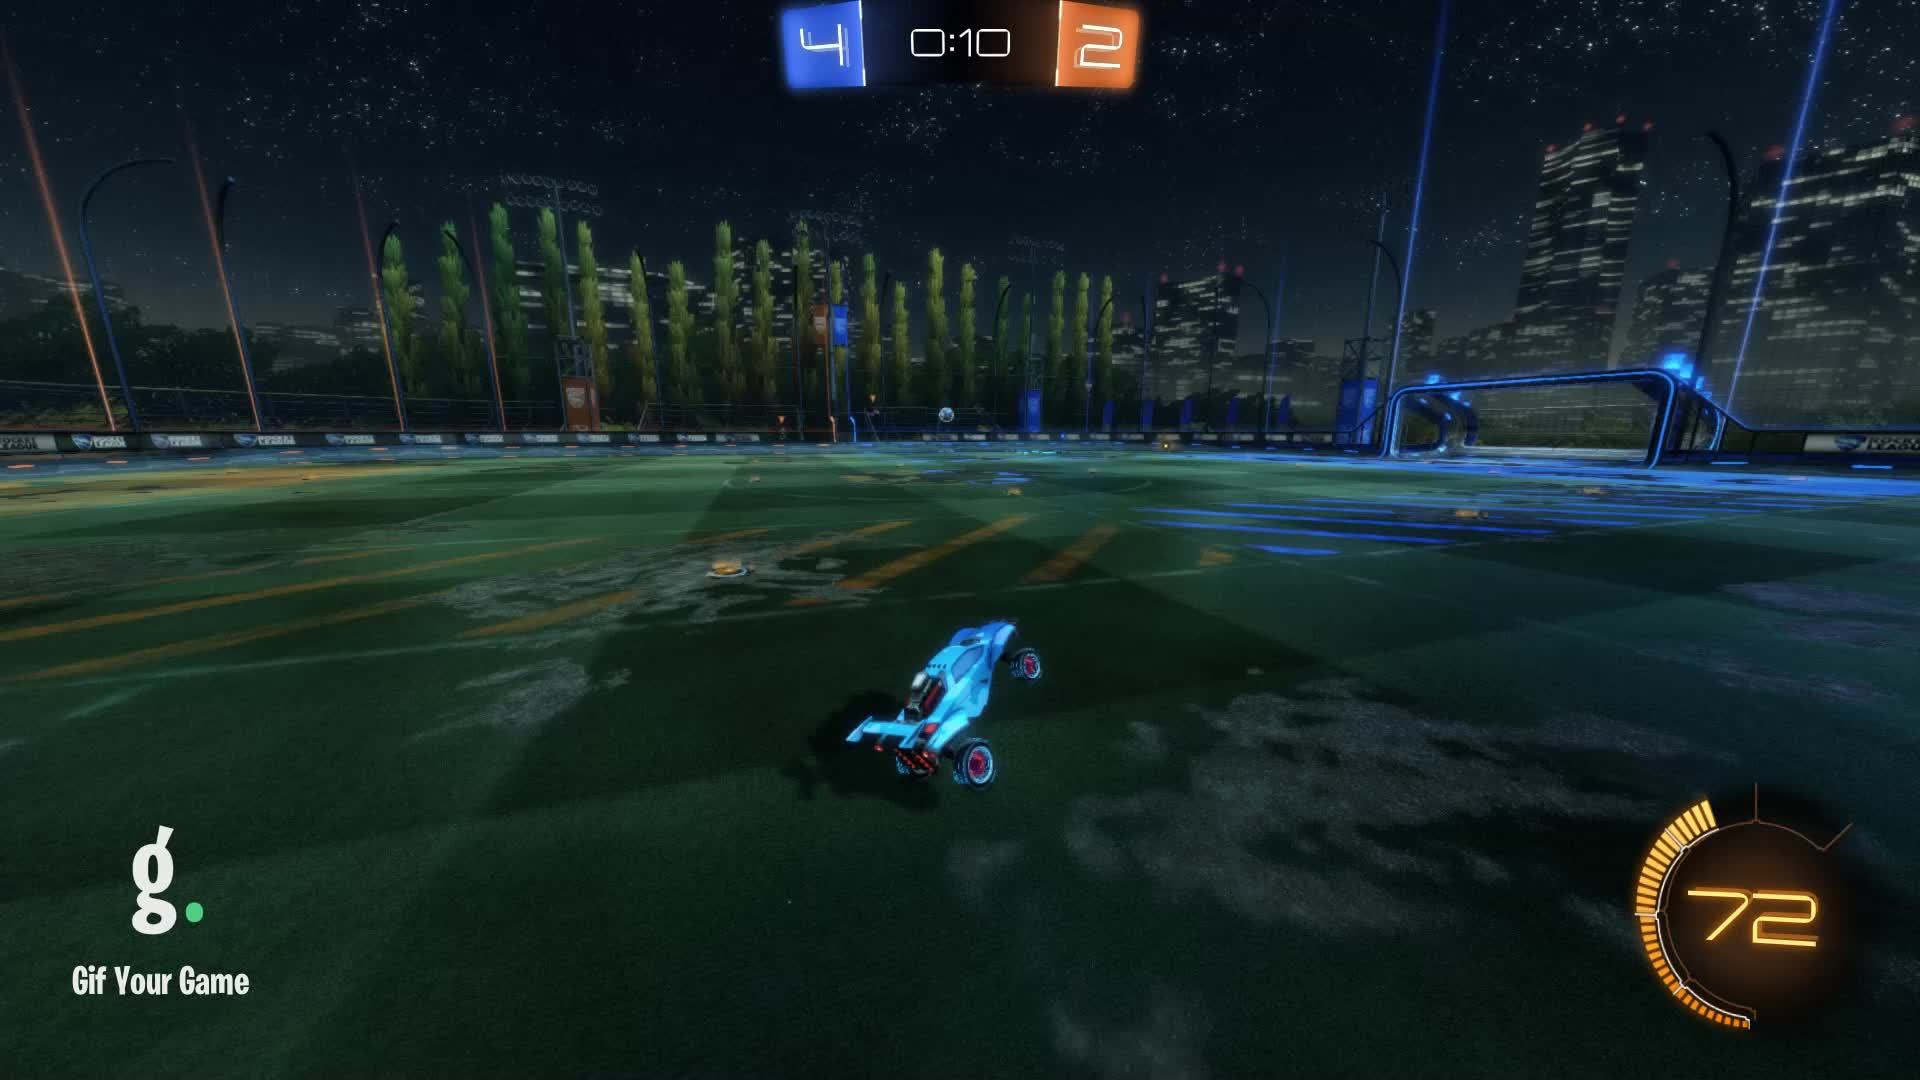 Gif Your Game, GifYourGame, Goal, Rocket League, RocketLeague, Timper [NL], Goal 7: Timper [NL] GIFs